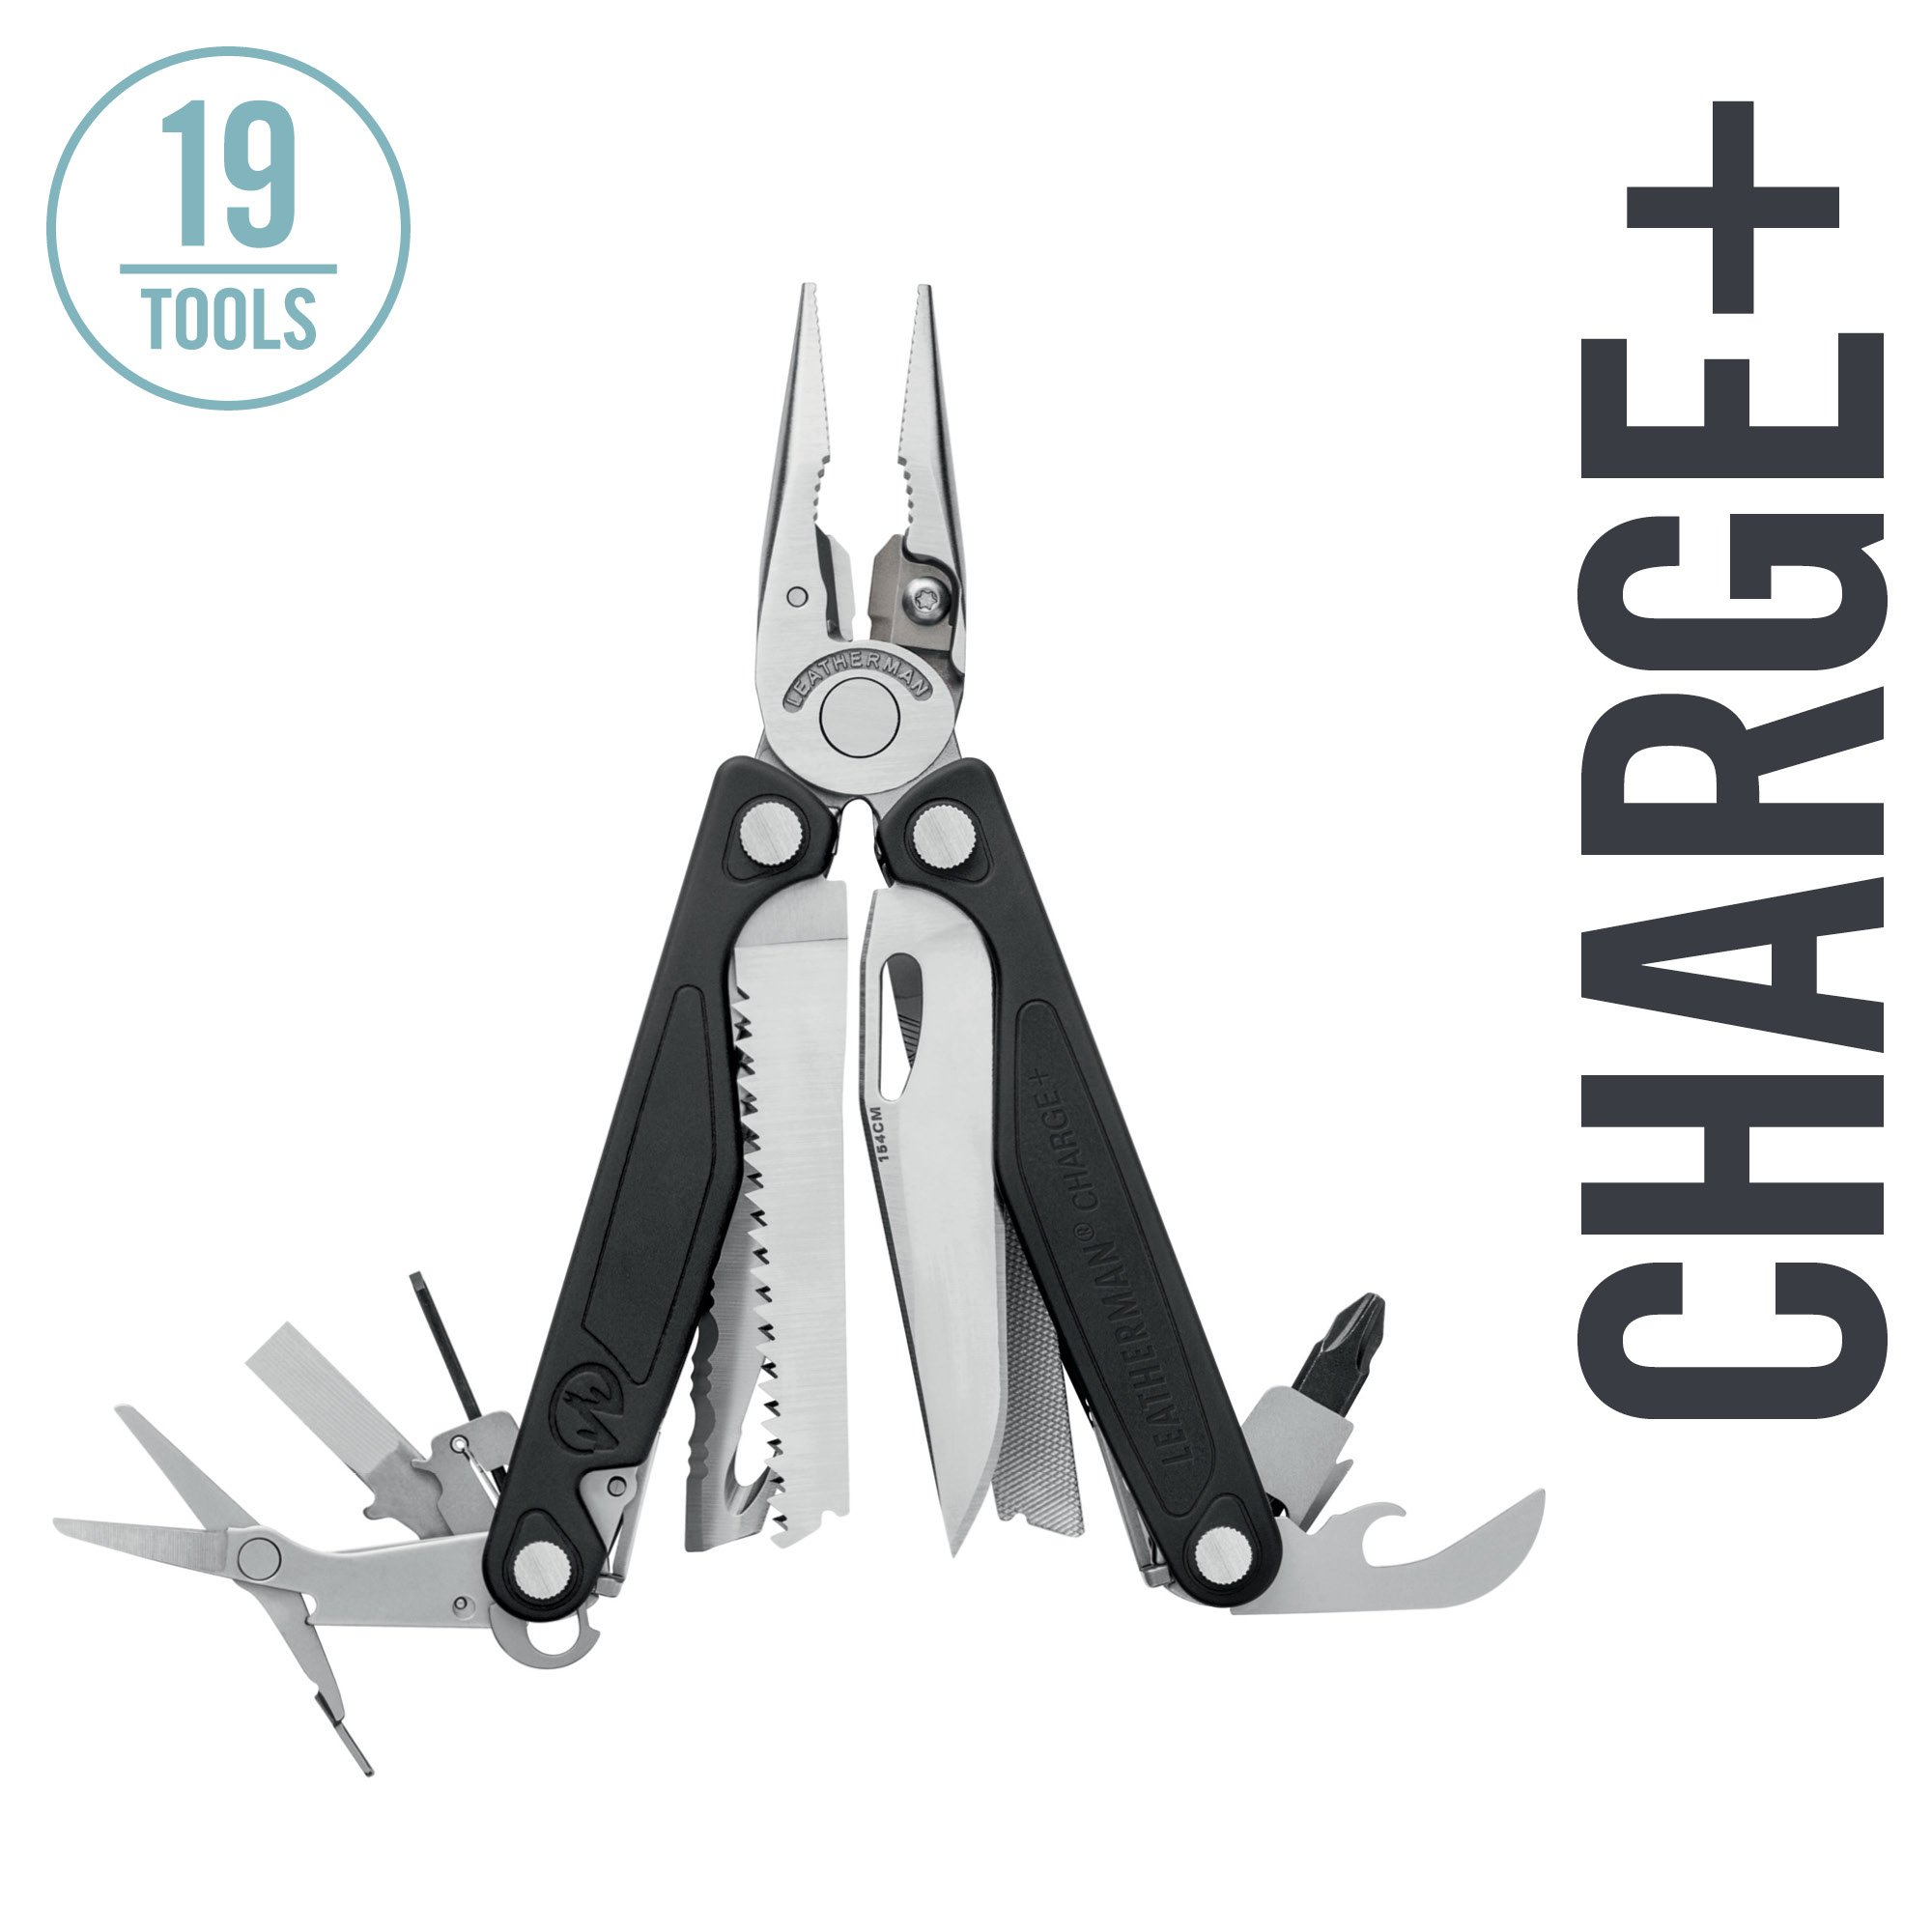 Leatherman - Charge Plus Multitool, Stainless Steel